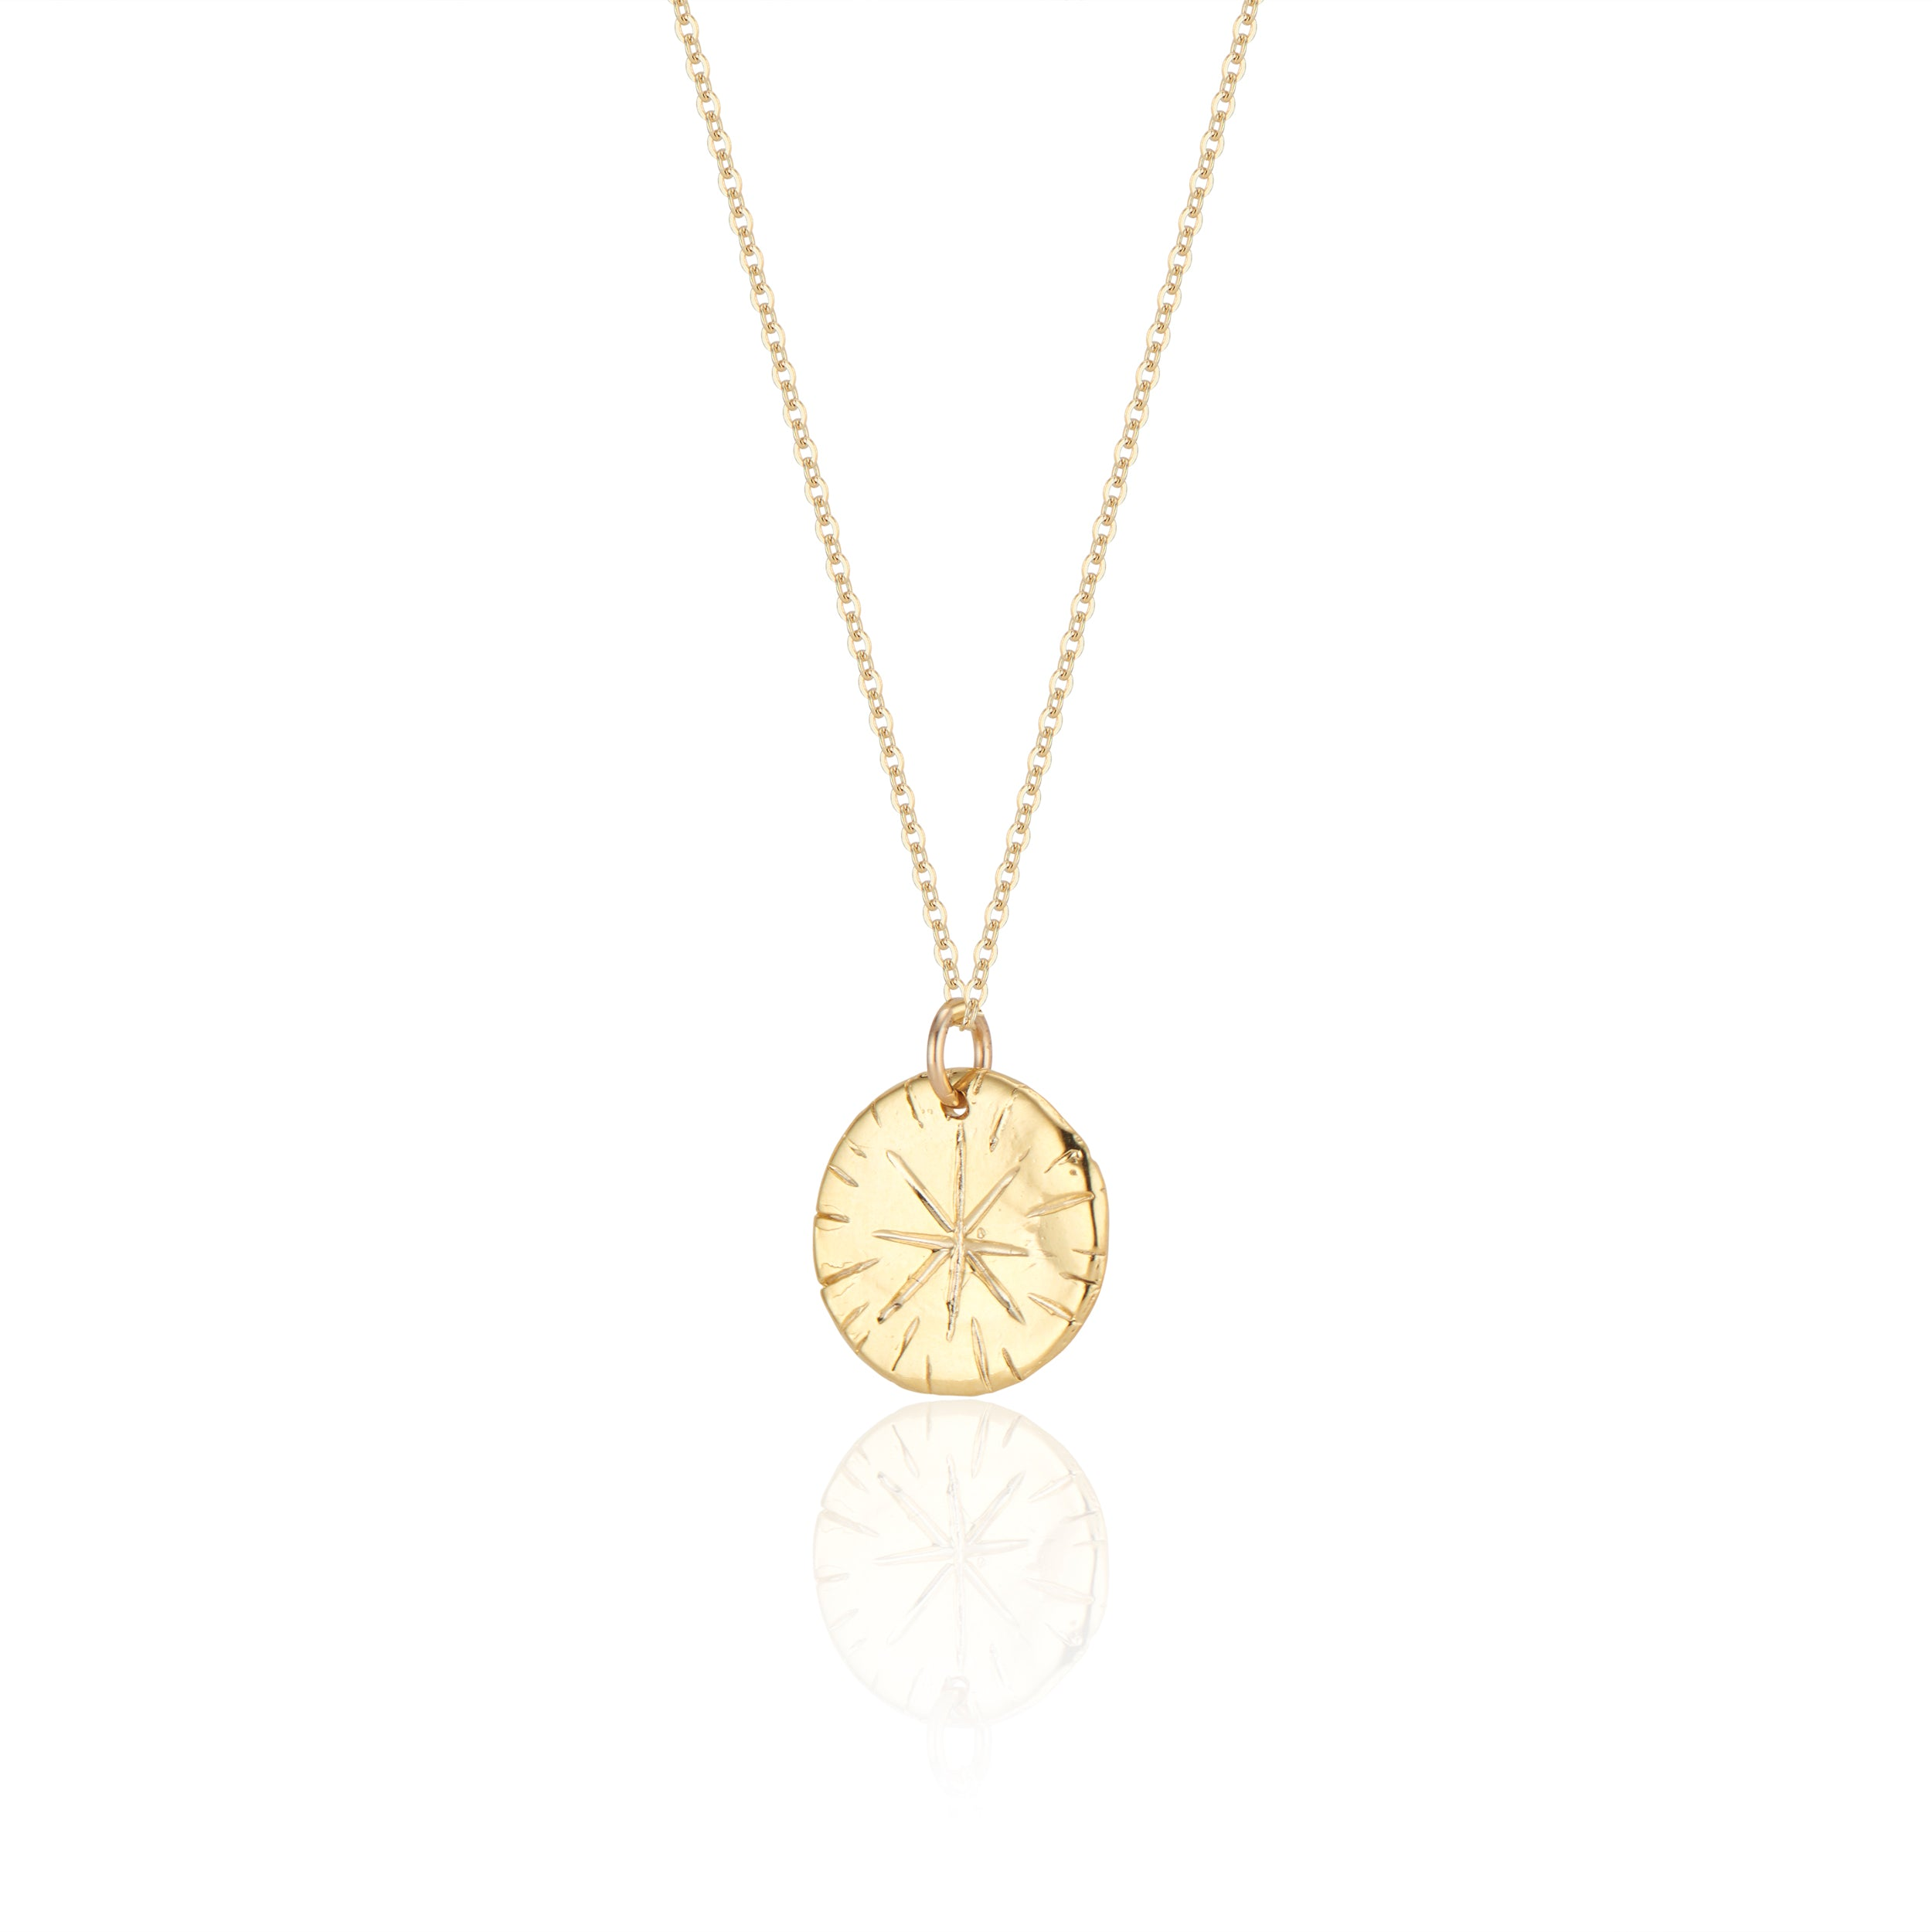 14K GOLD STELLA NECKLACE